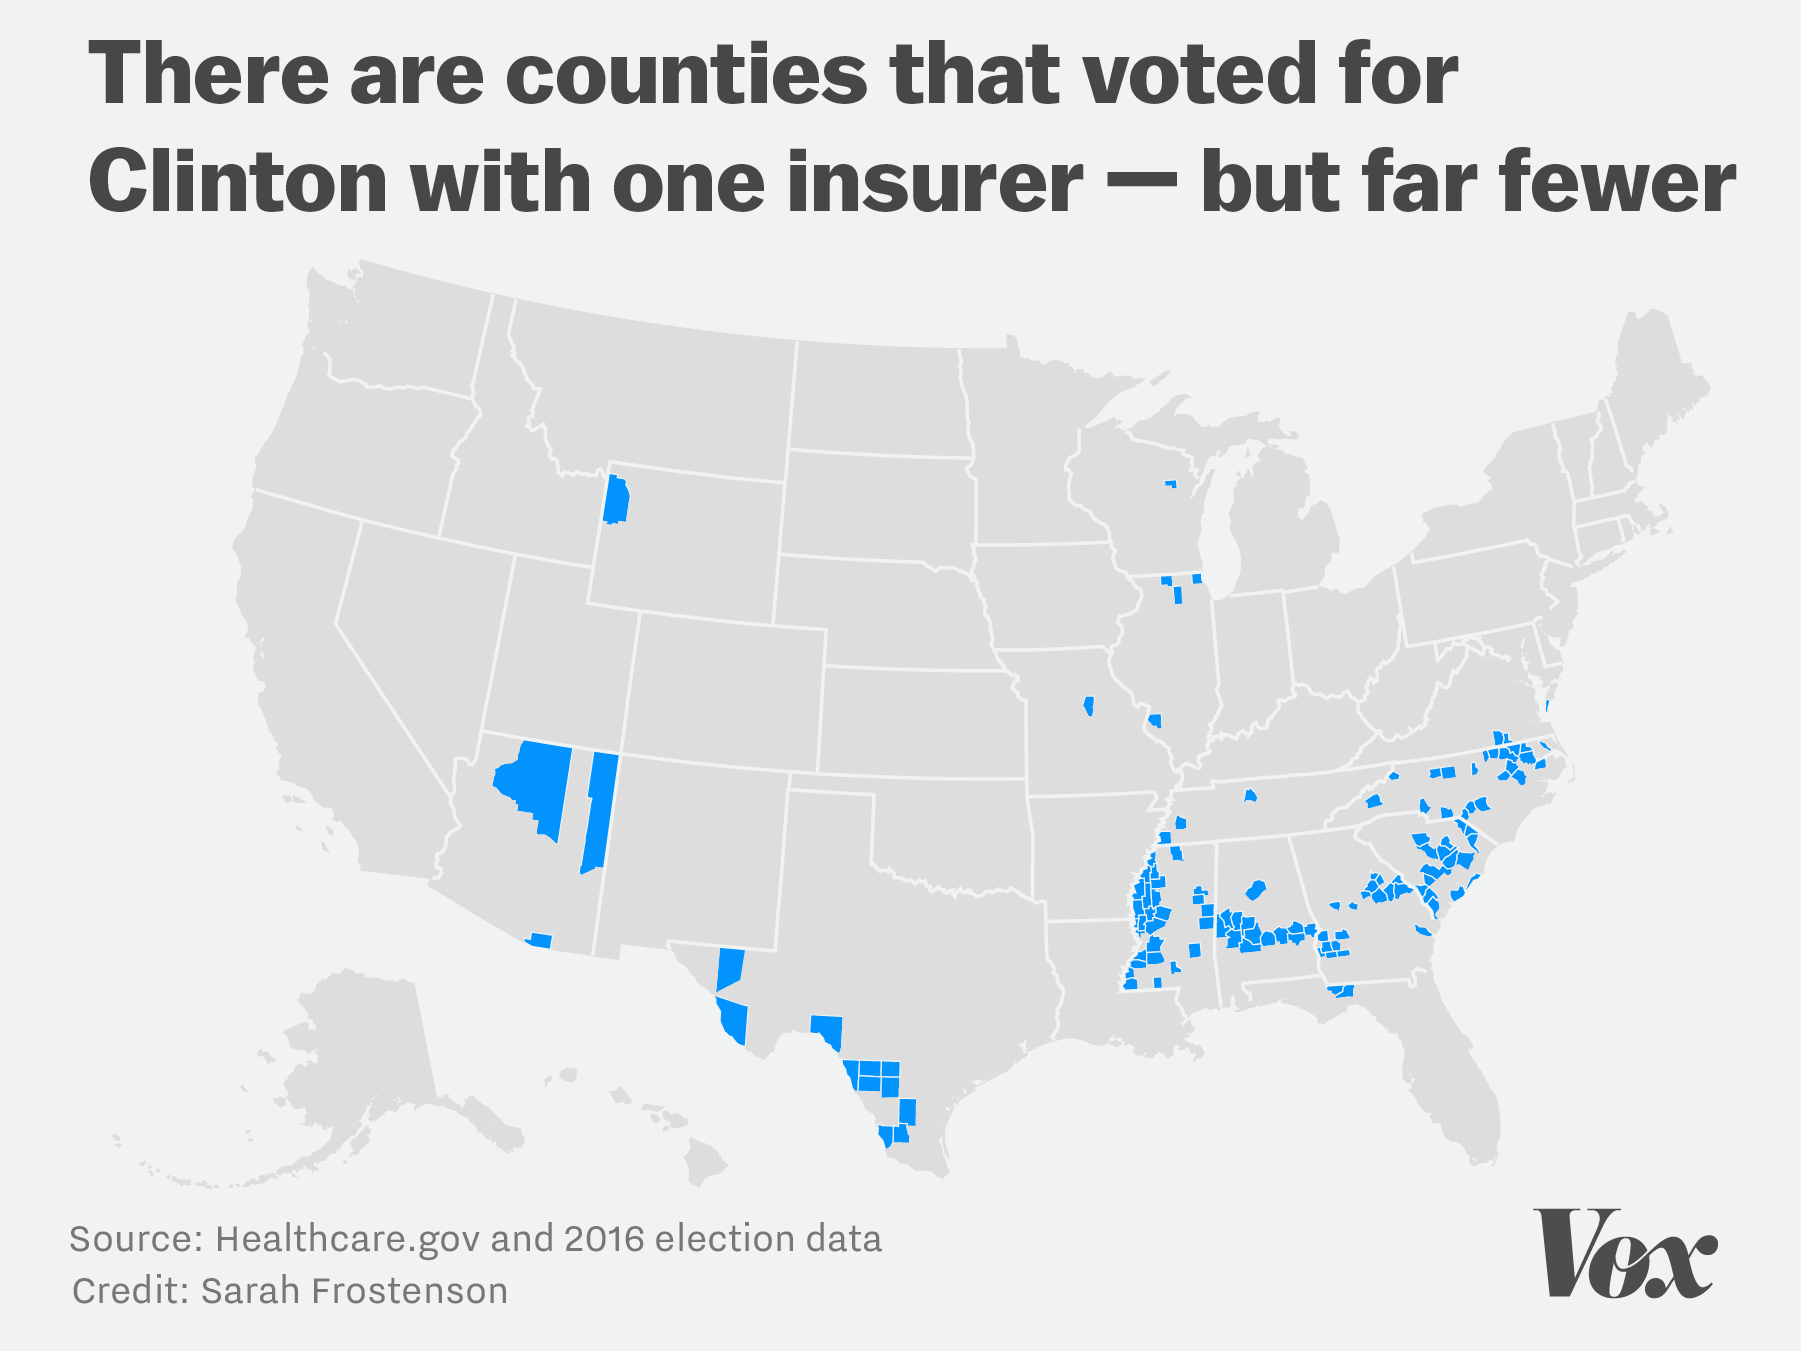 But Compare Them To The Counties With One Insurer That Voted For Trump And It S Easy To See That Trump Supporters Are Disproportionately Impacted